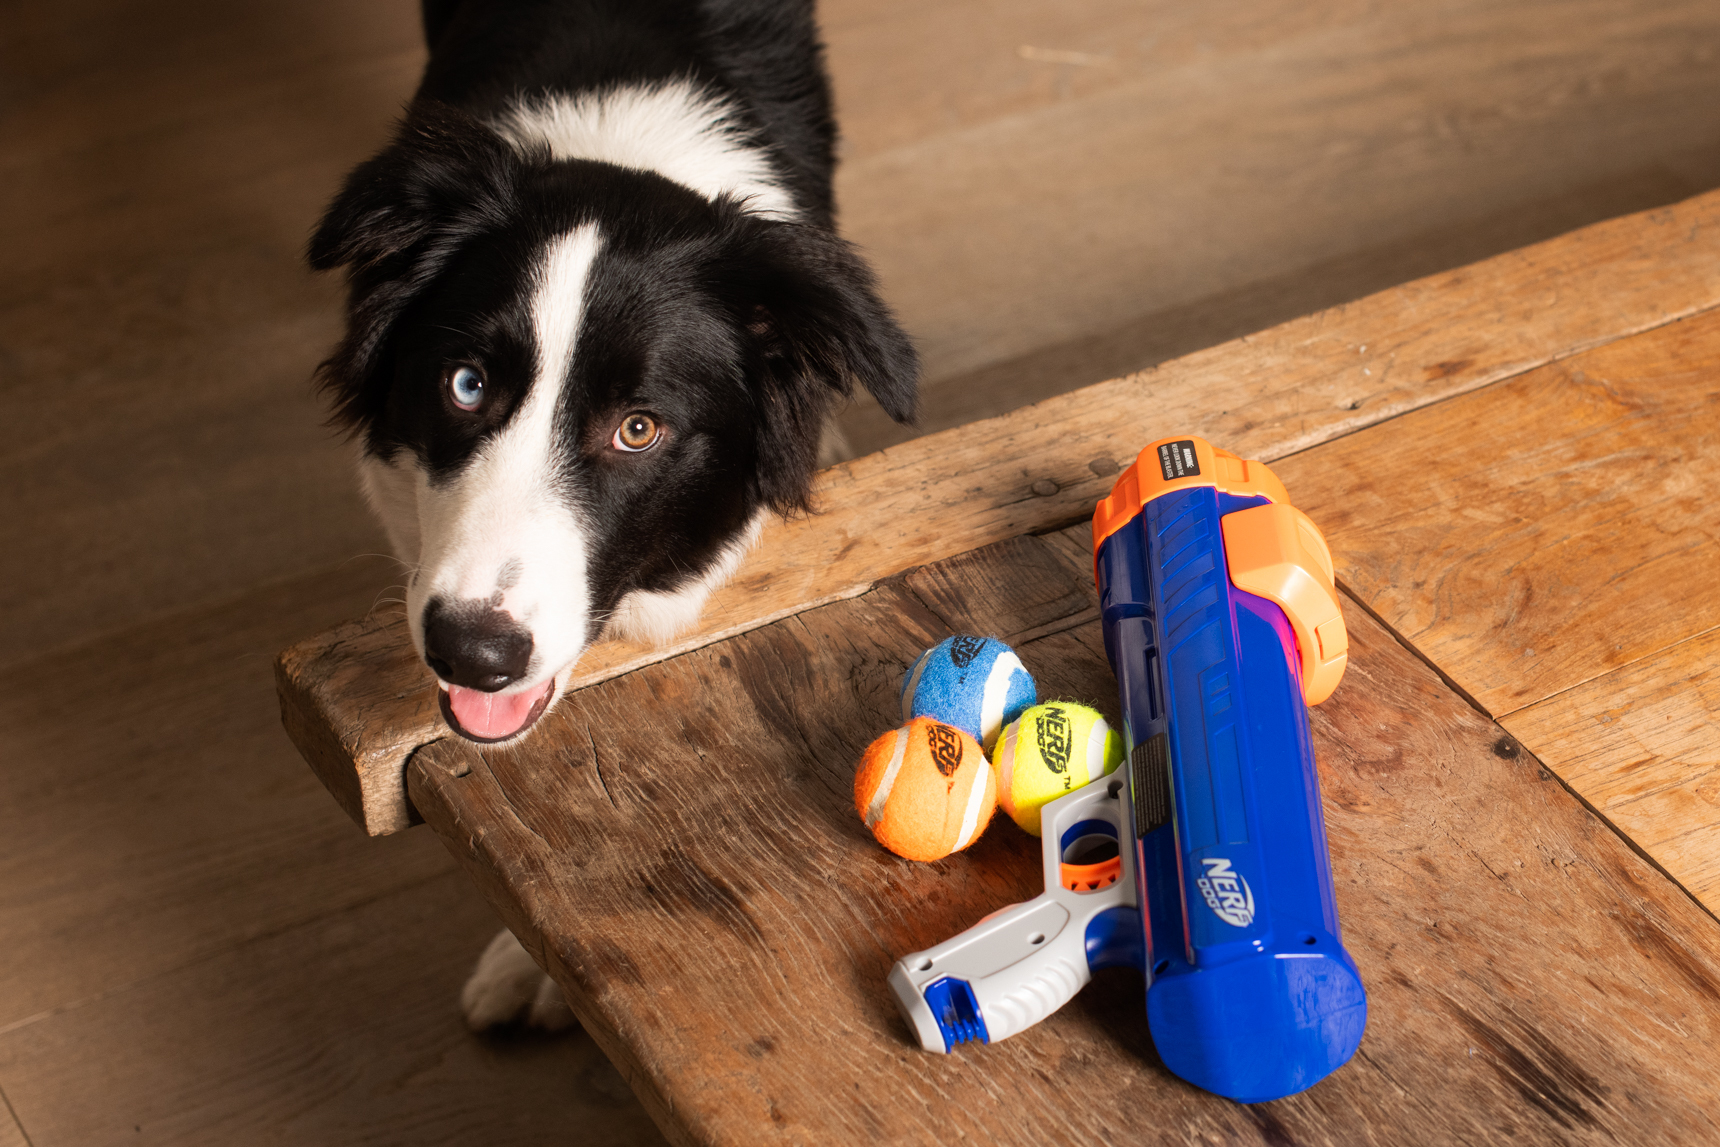 Dog playing with toy from Petstock